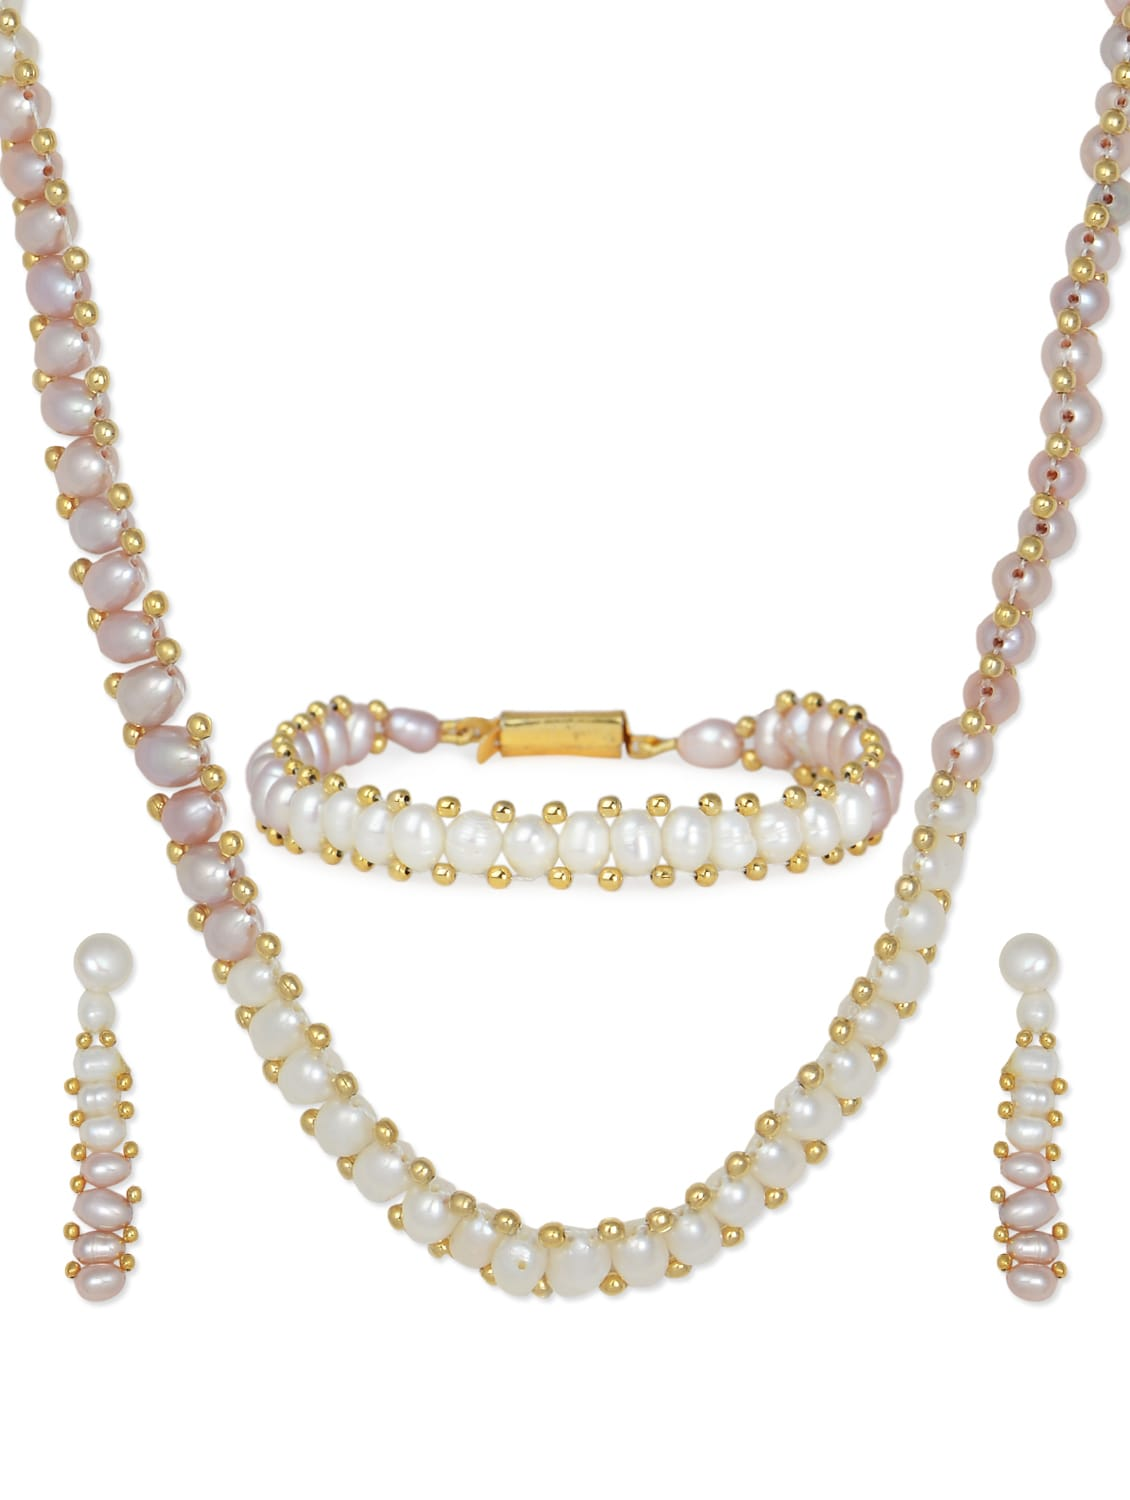 Buy online Set Of Elegant White Pearl Necklace Earrings And ...